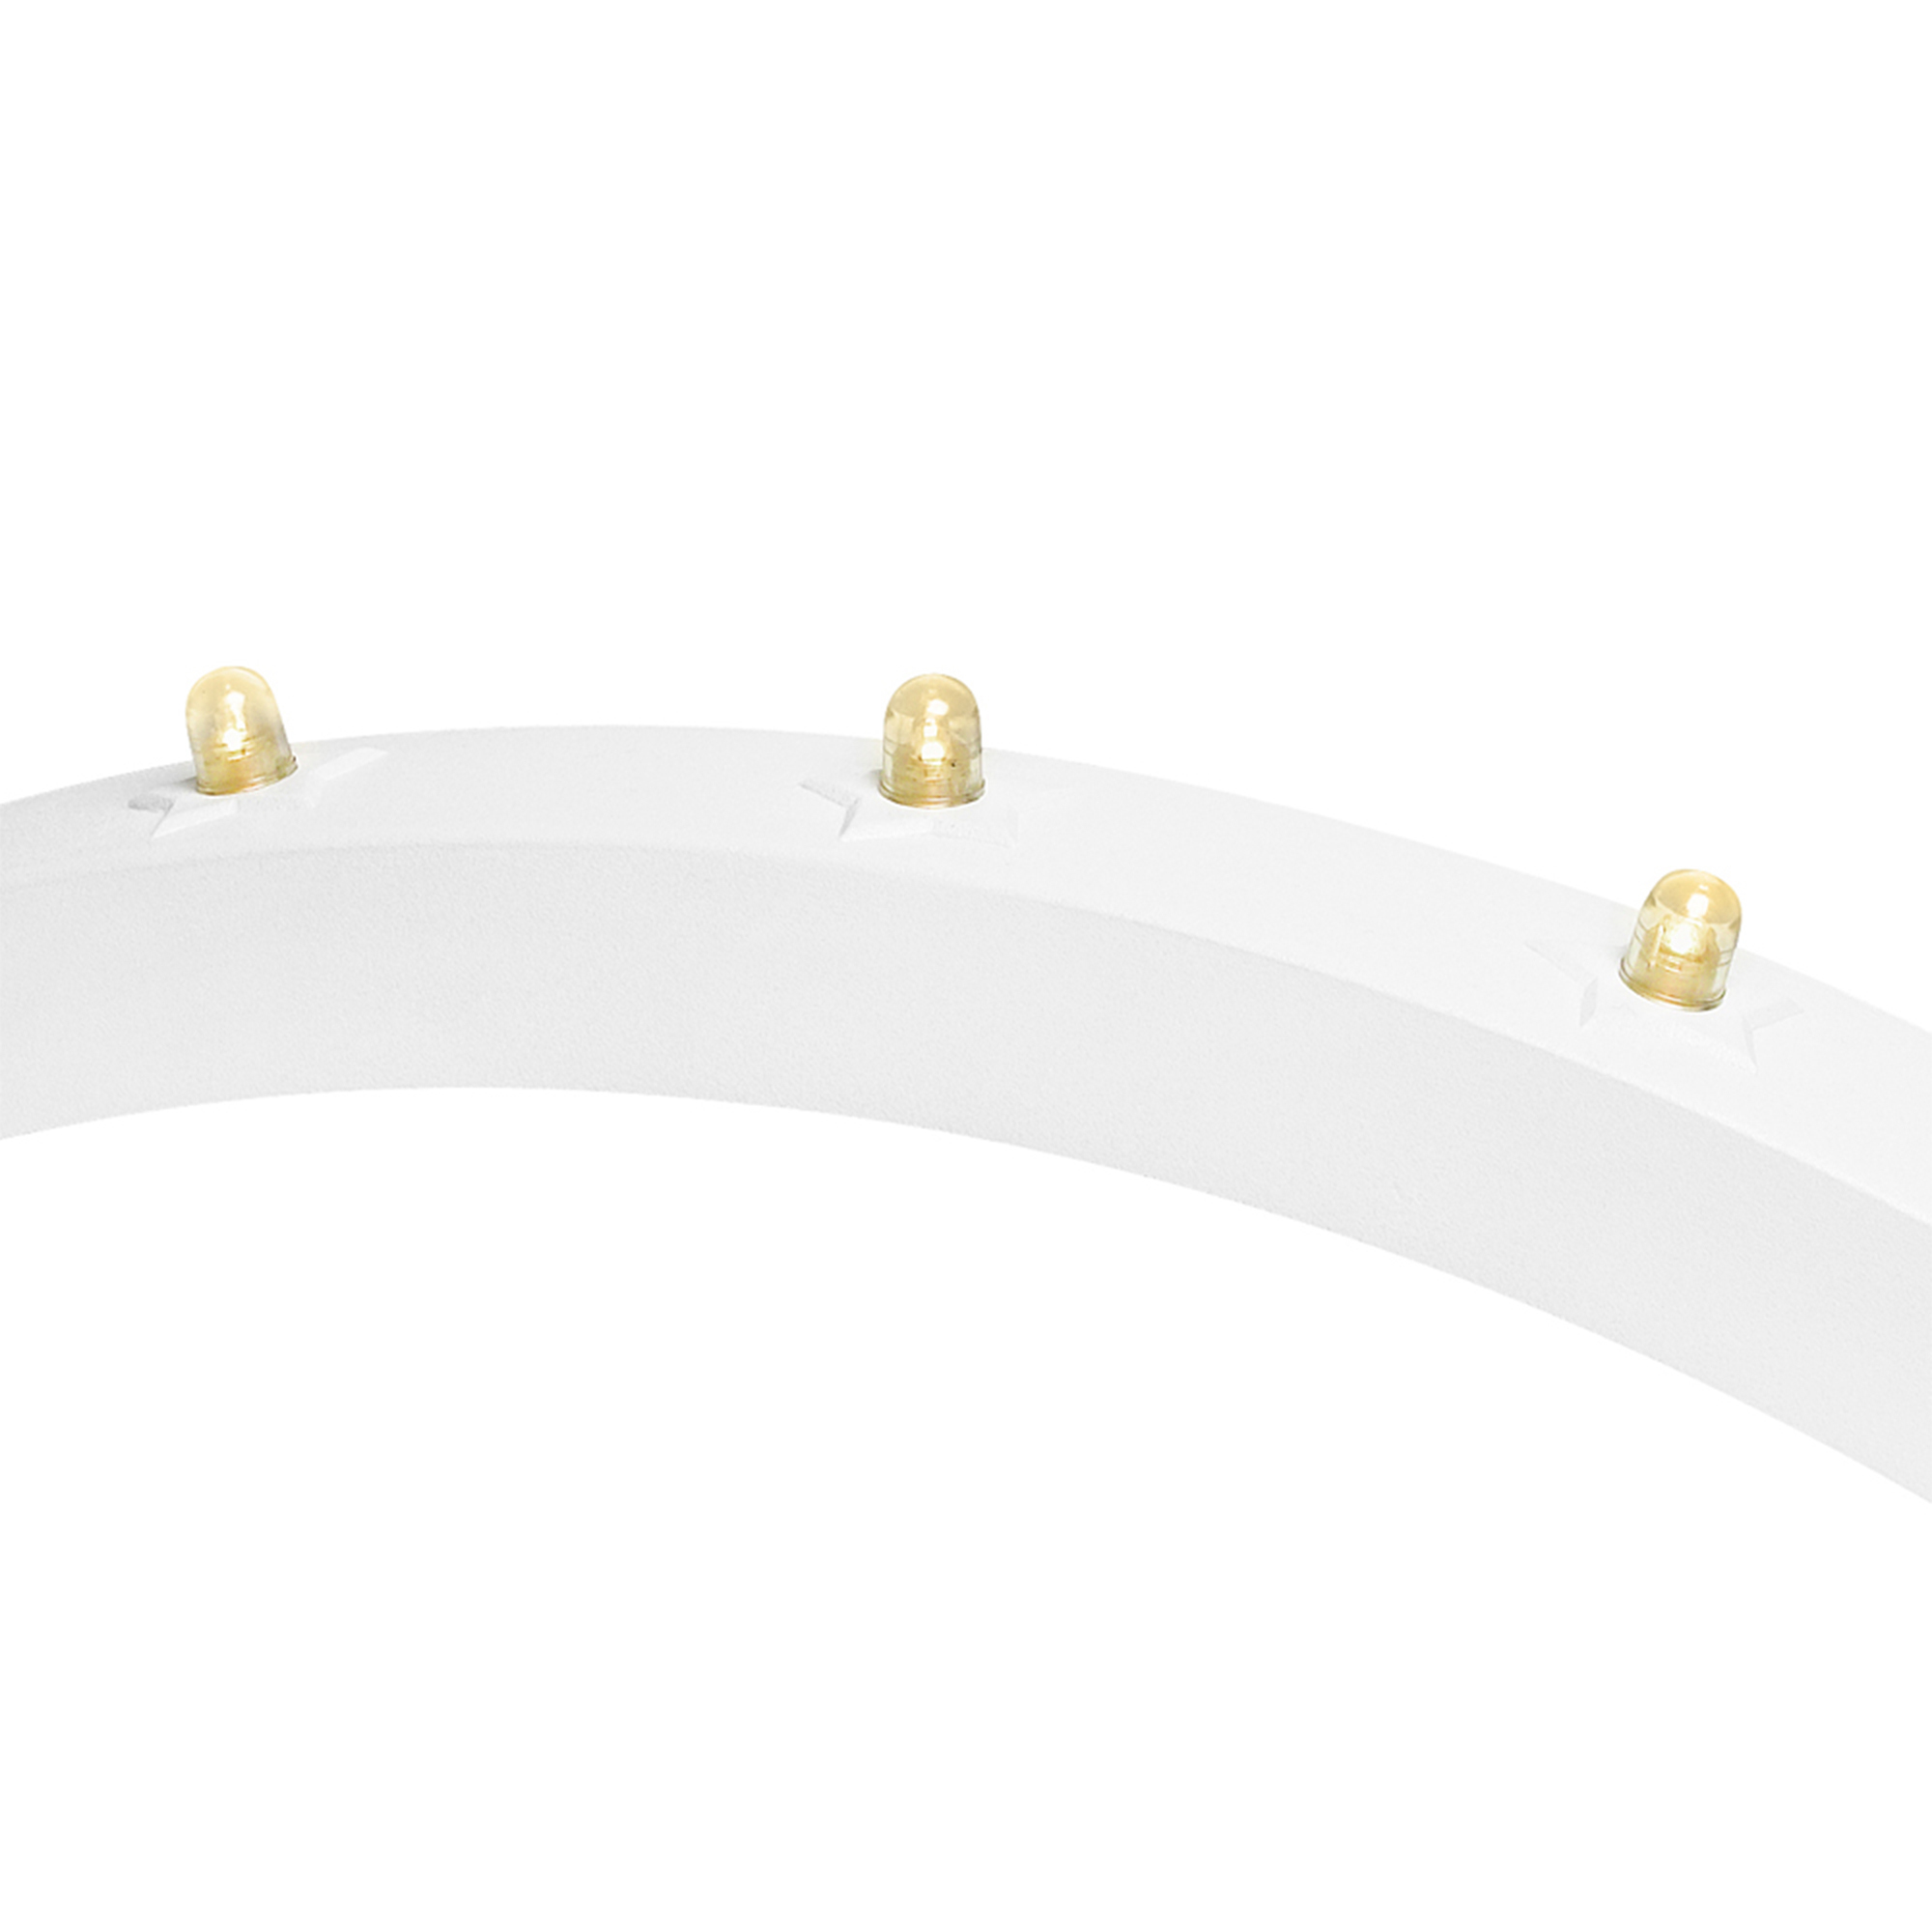 Designtorget Extralampa lightbow 5-pack